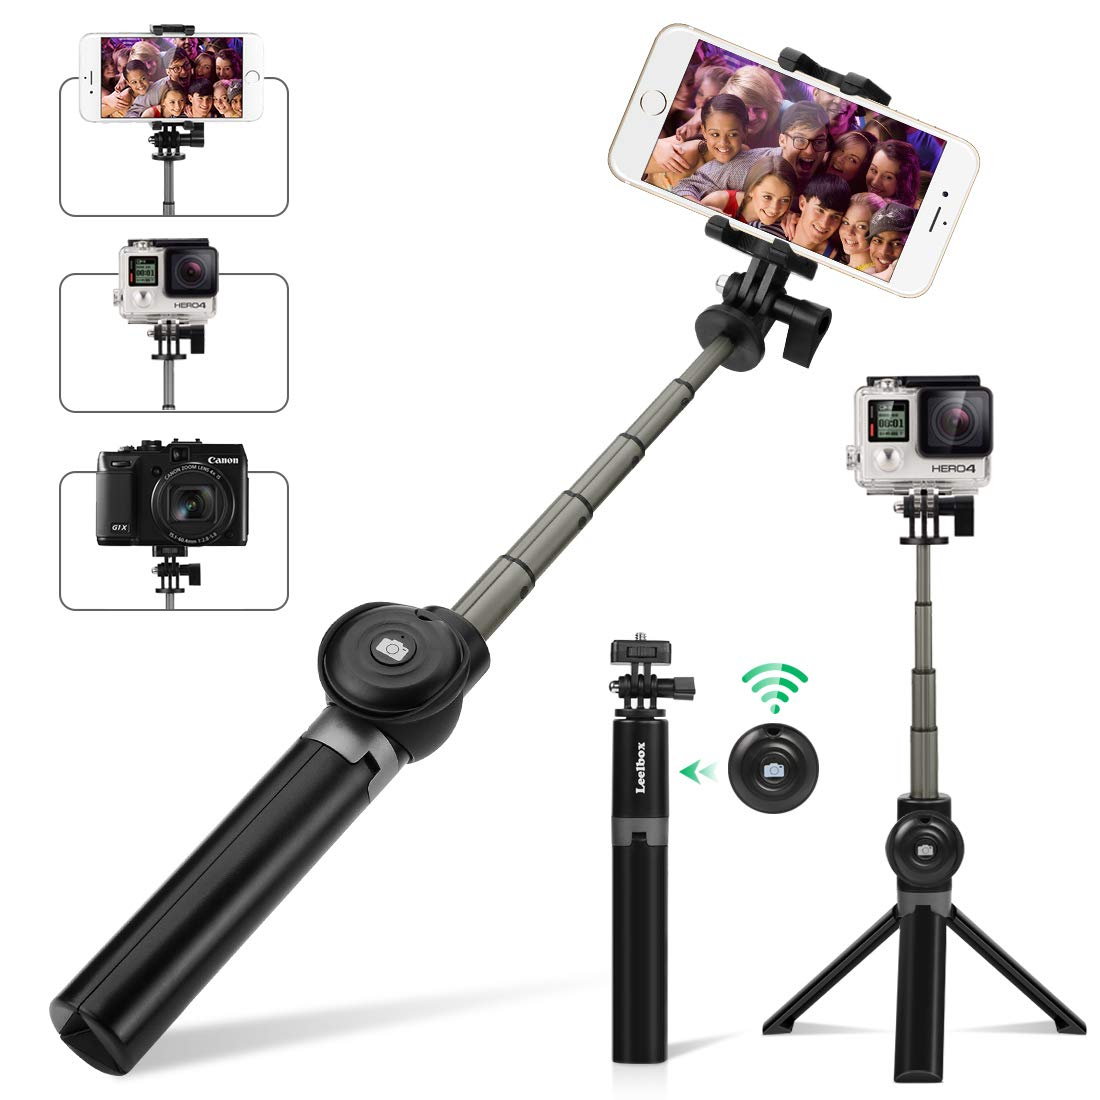 Selfie Stick Tripod, Leelbox Bluetooth Selfie Stick with Tripod and Detachable Wireless Remote, Extendable Monopod Stand Holder Universal for Digital Camera and Android iOS Mobile Smart Phone